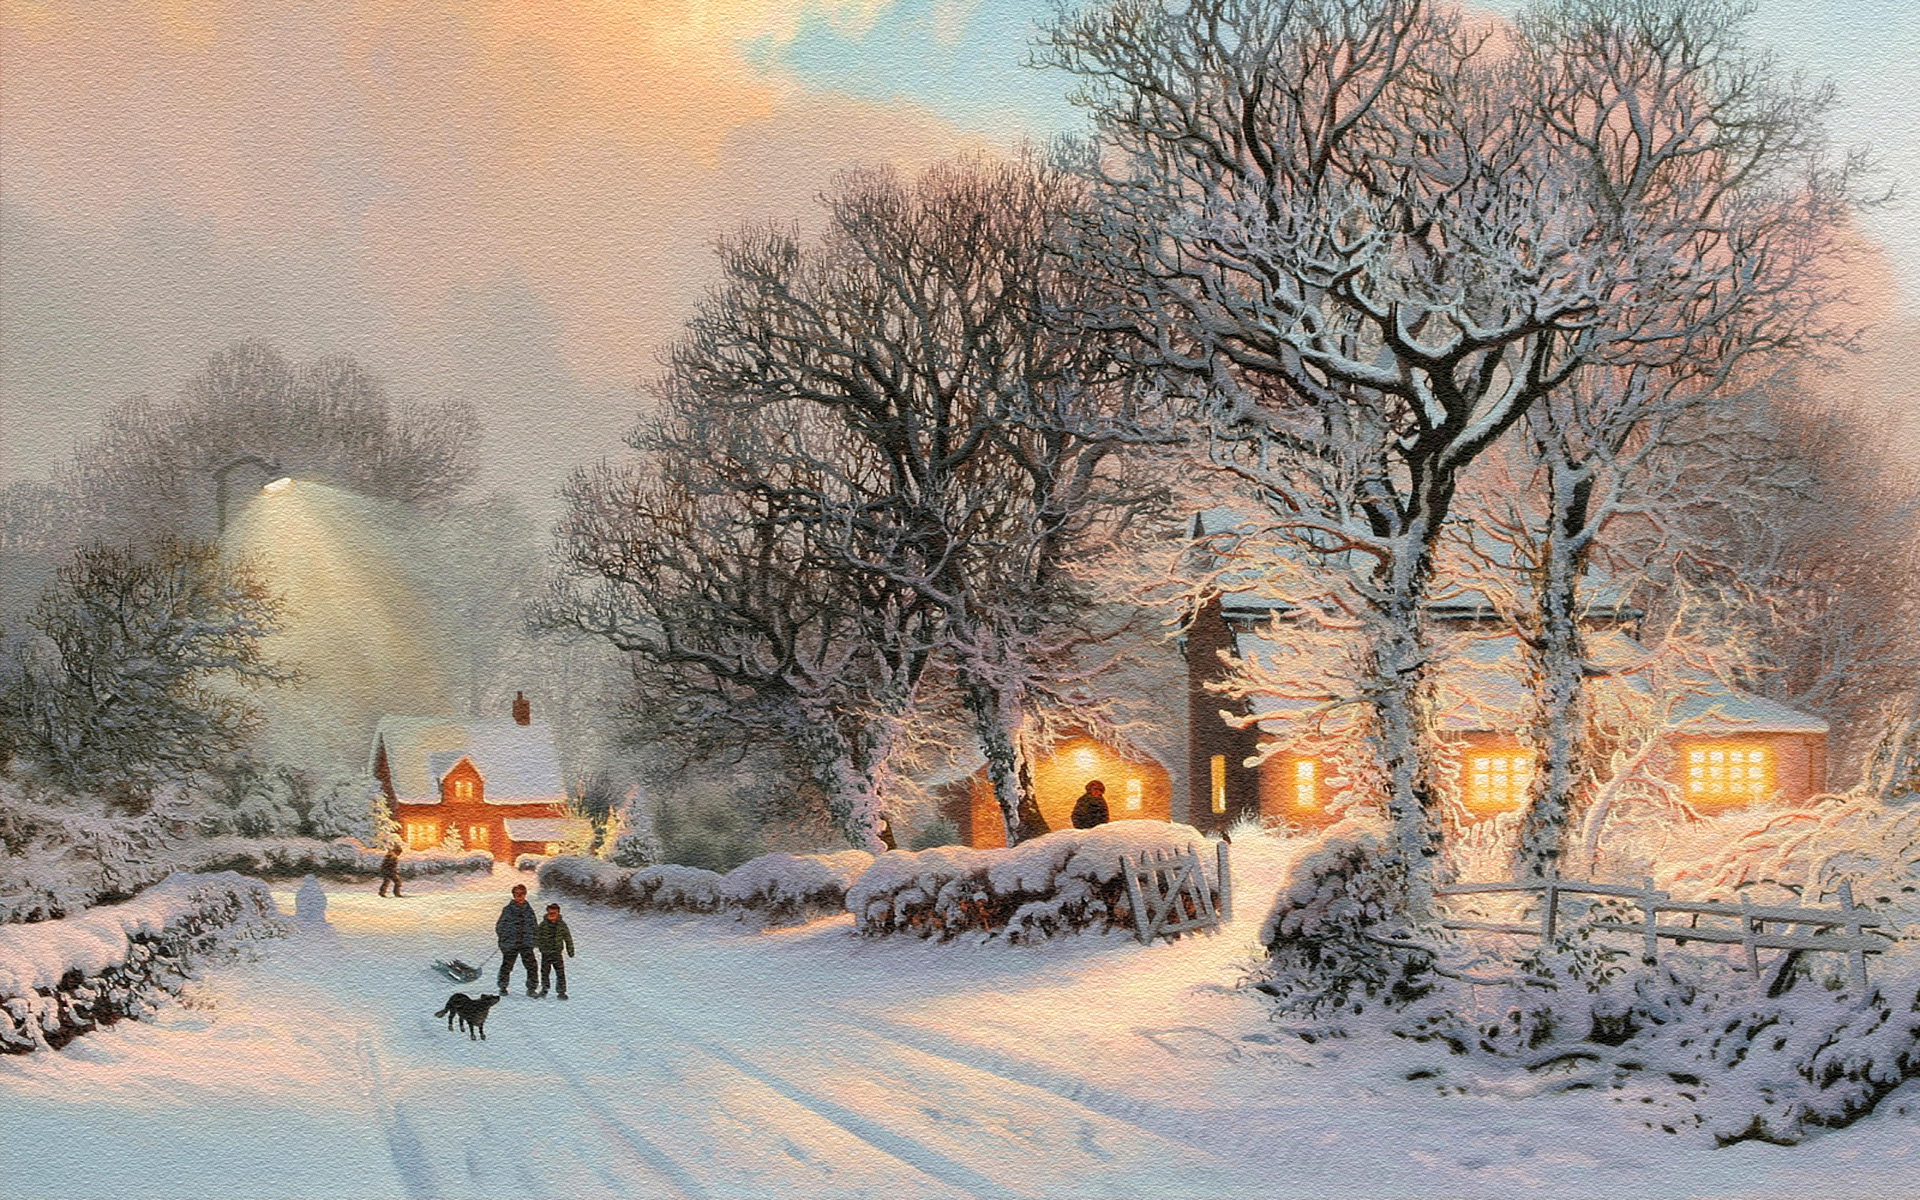 Falling Snow Wallpaper For Ipad 25 Stunning Winter Wallpapers